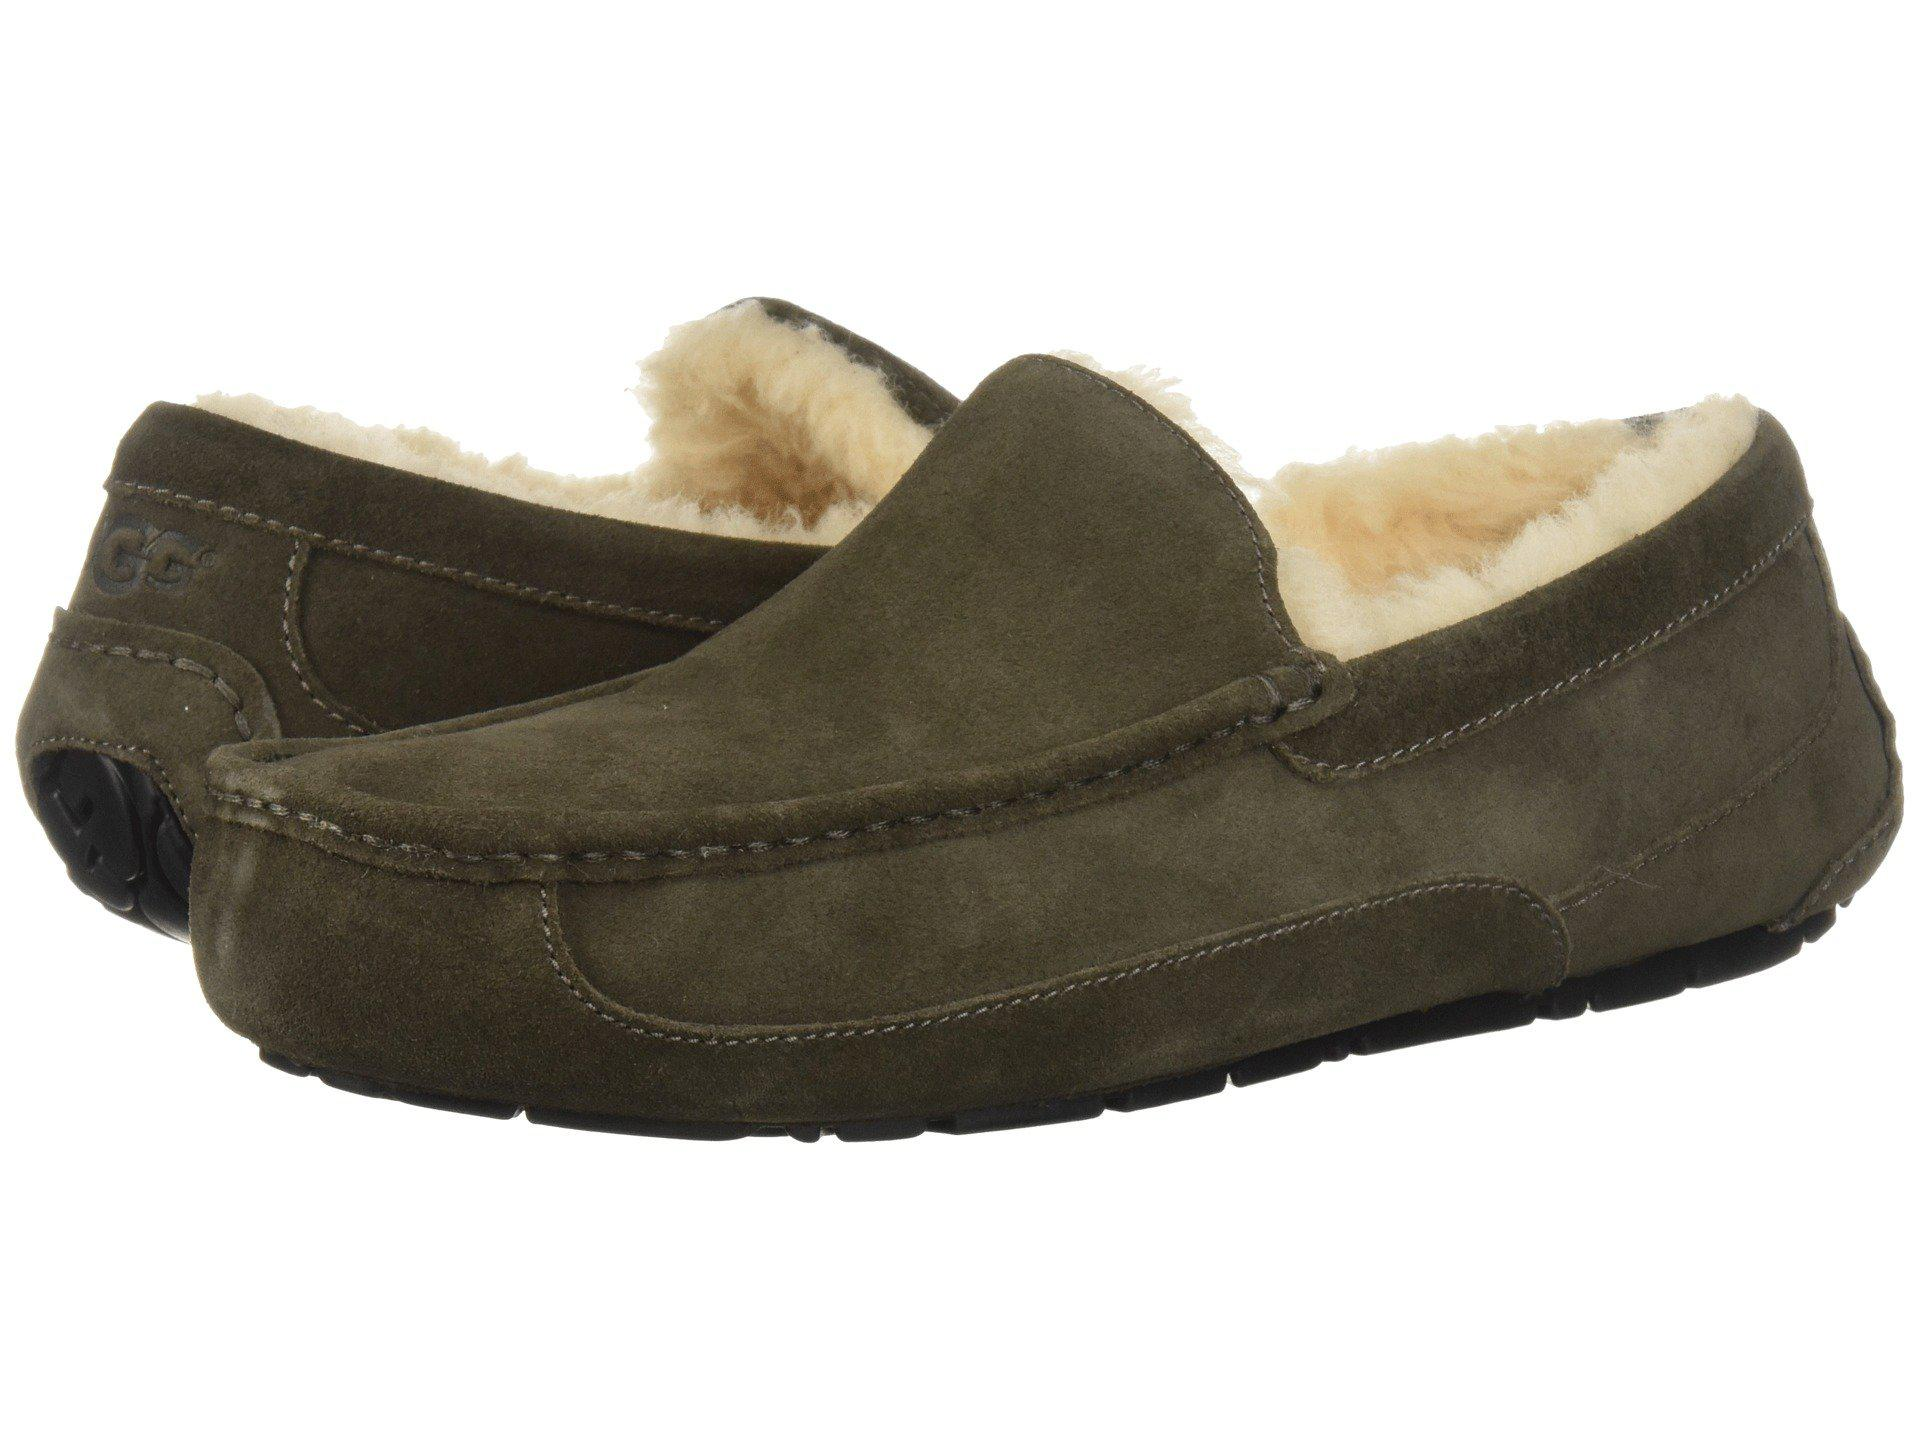 Men UGG Ascot Suede Slipper Size 9 M Moss Green Suede